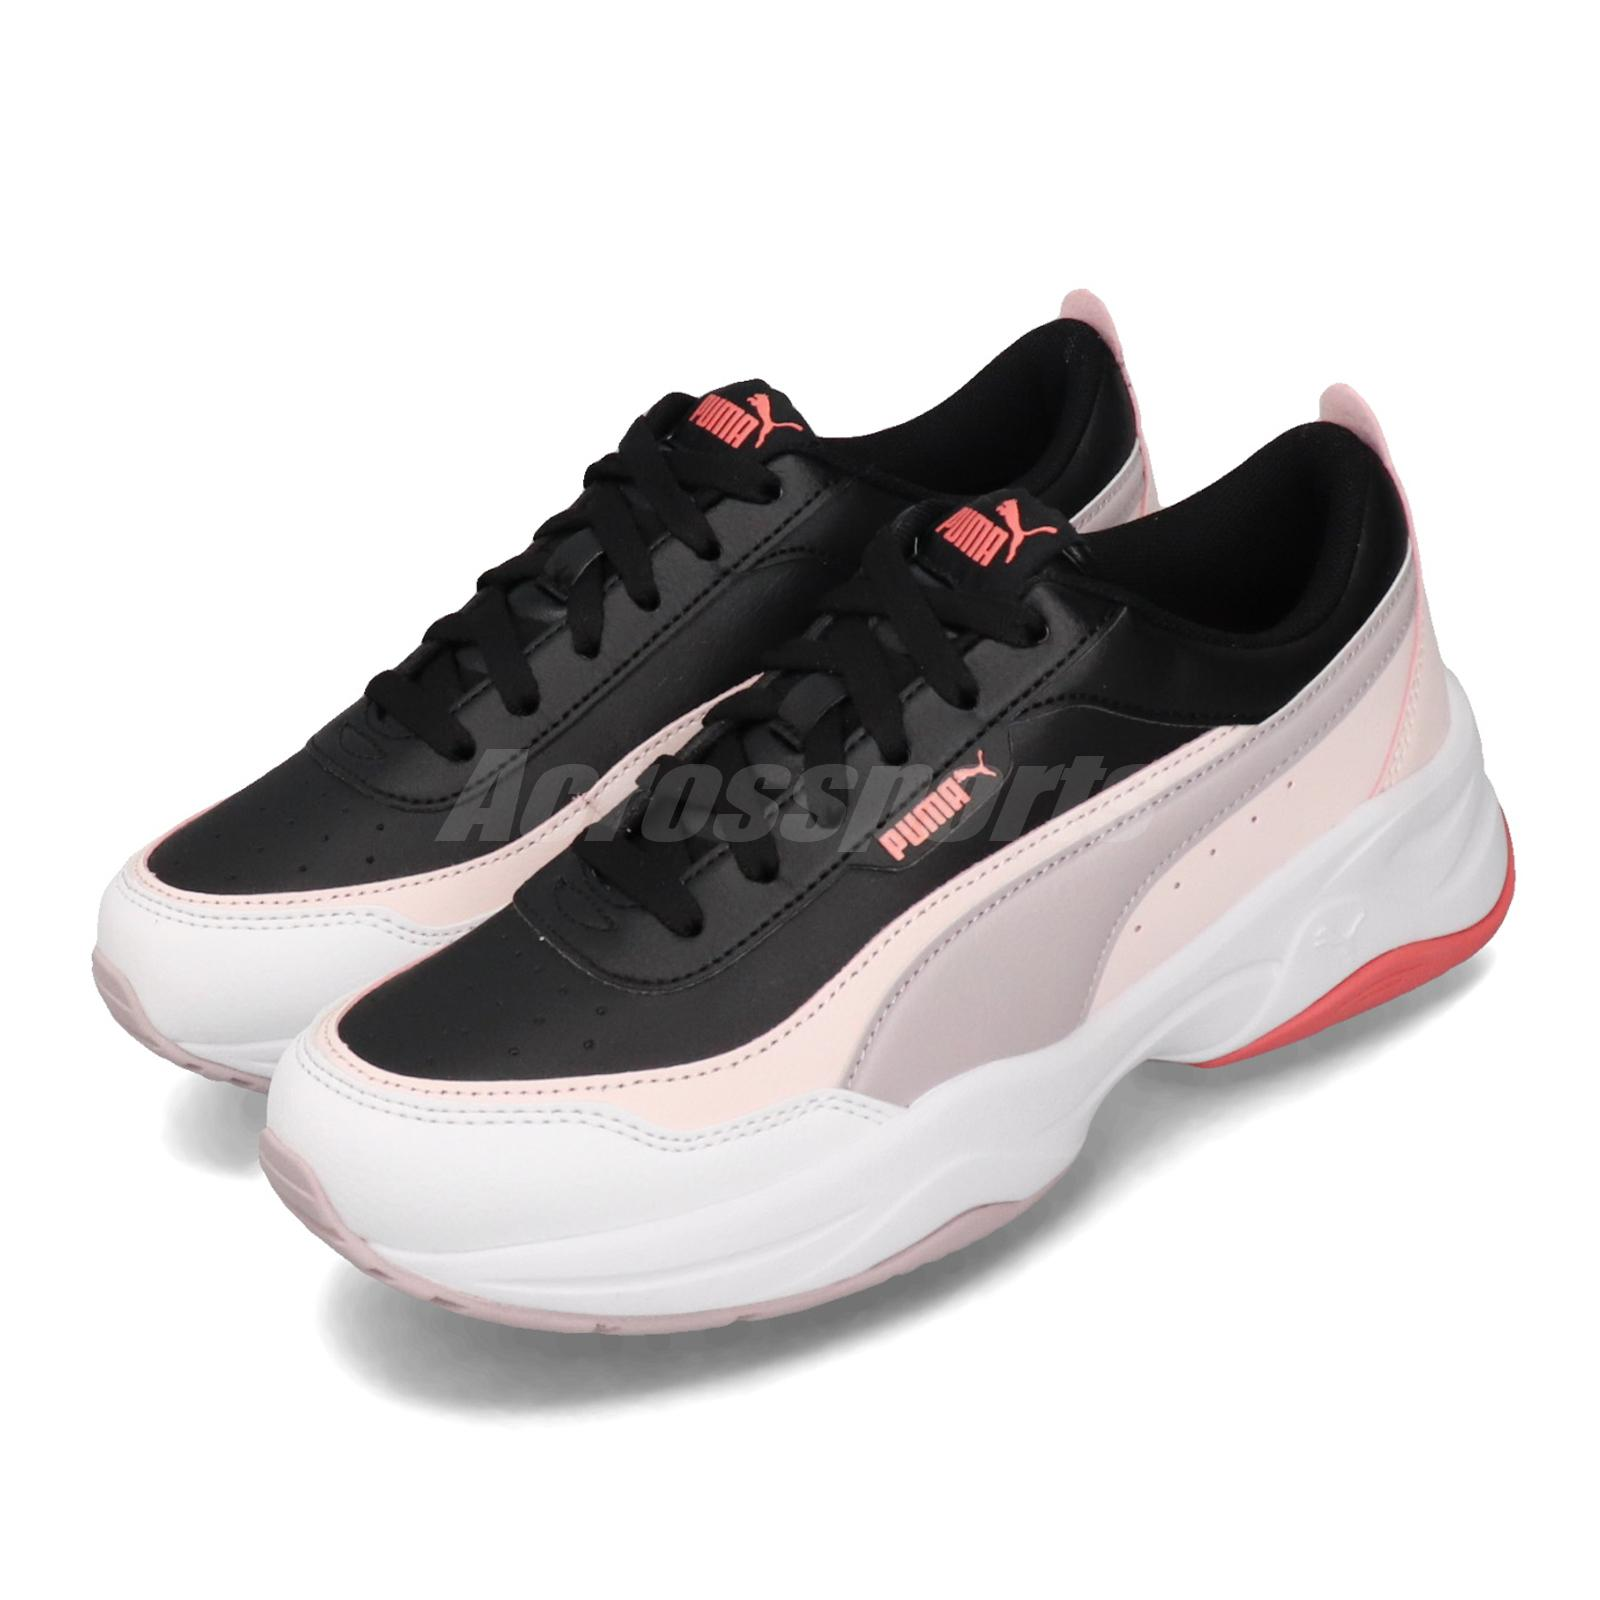 Details about Puma Cilia Mode Black Pink Grey Womens Lifestyle Shoes  Trainer Sneaker 371125-05